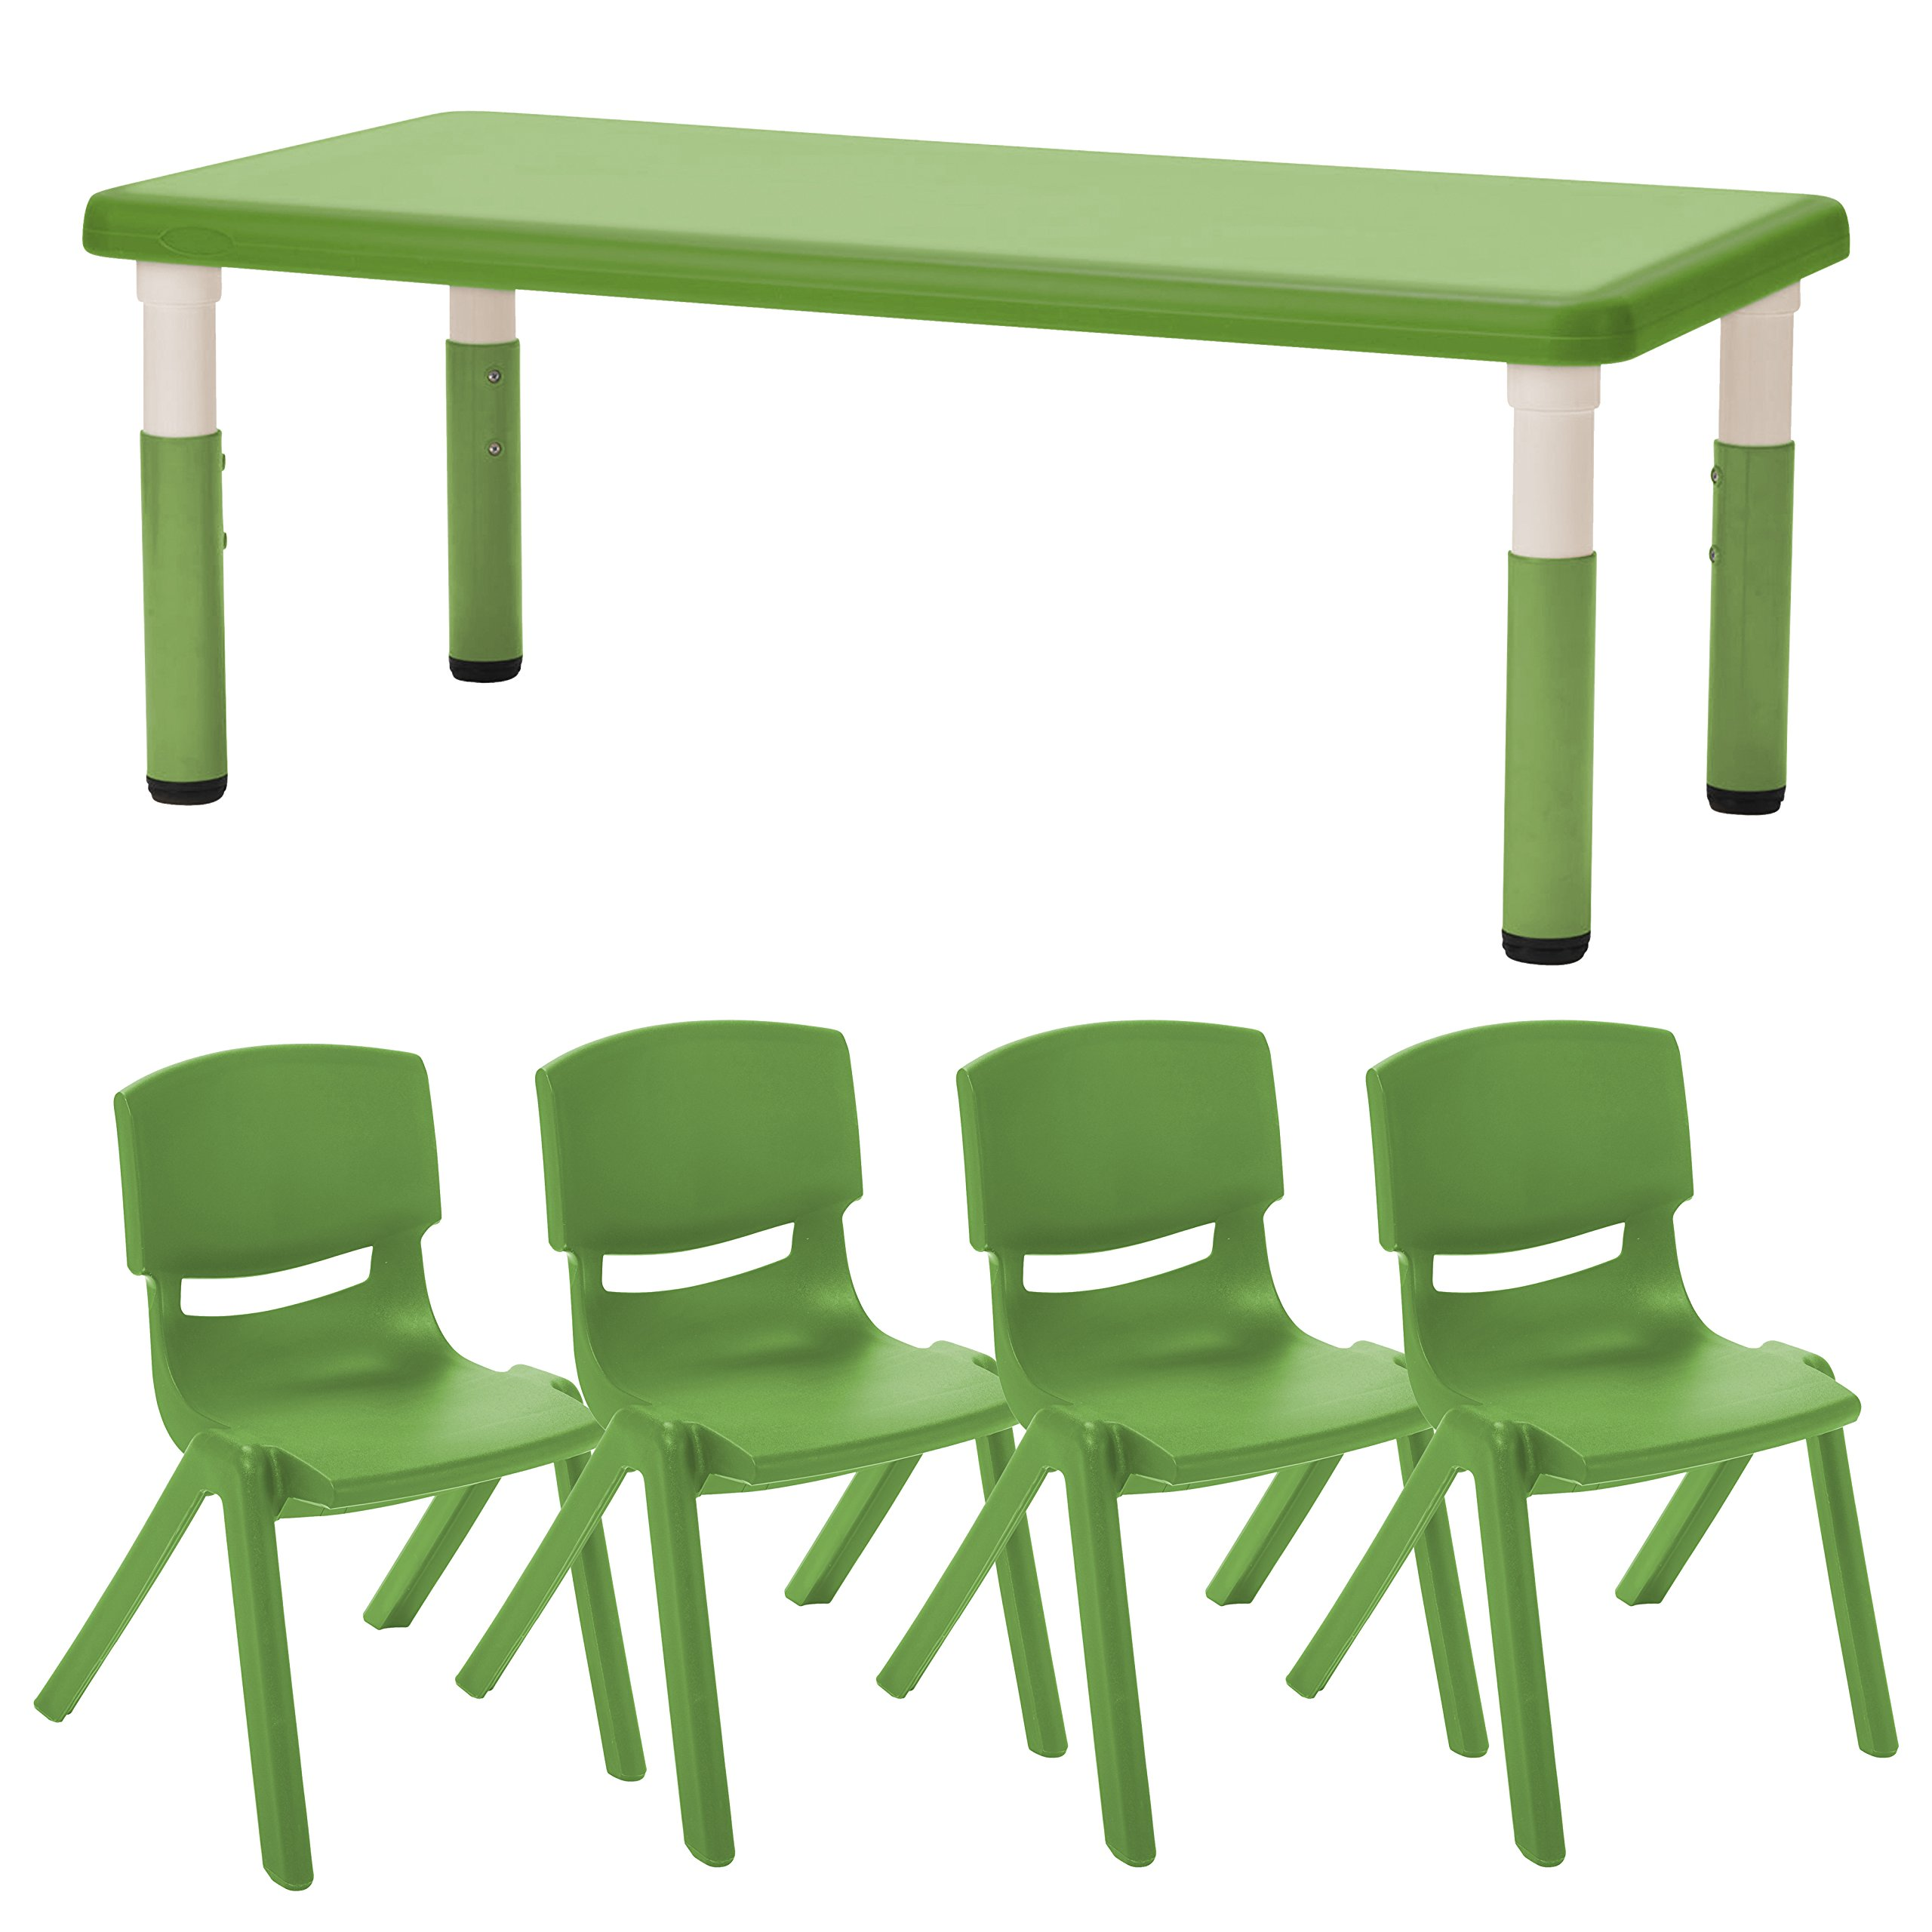 ECR4Kids24'' x 48'' Rectangle Resin Activity Table with Four 16'' Resin Chairs - Indoor/Outdoor Kids Seating Set for Classrooms, Daycares, Playgrounds, Grassy Green